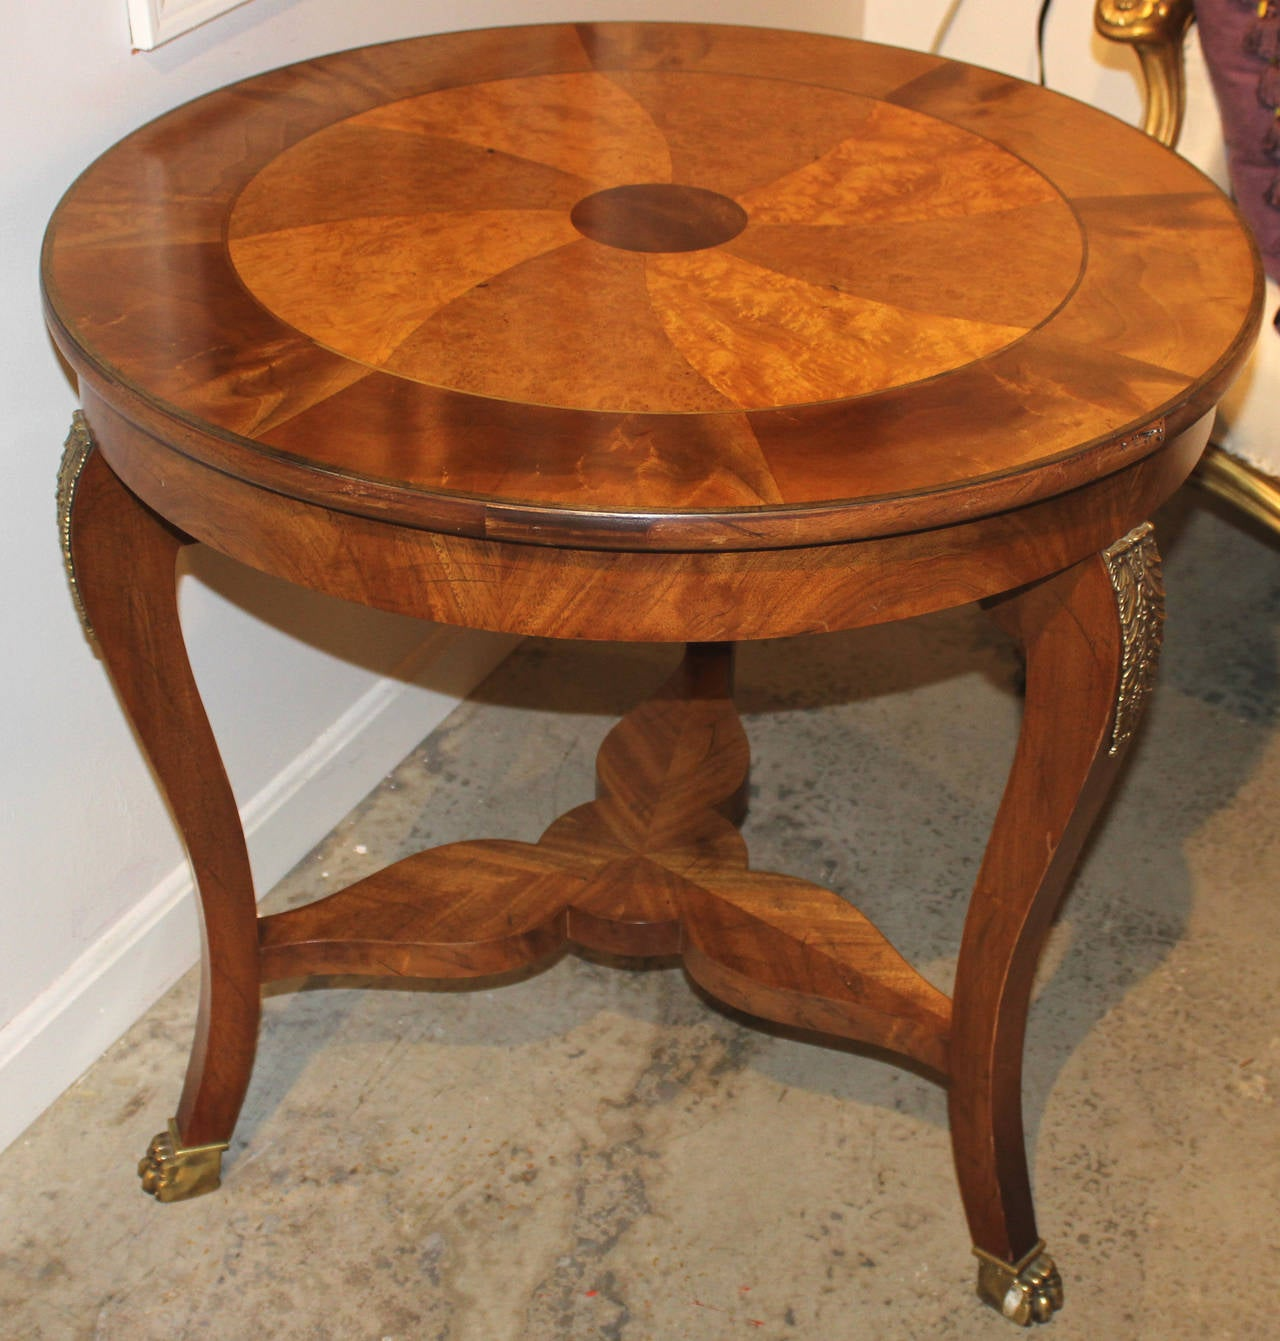 baker furniture fruitwood and mahogany center table with pinwheel